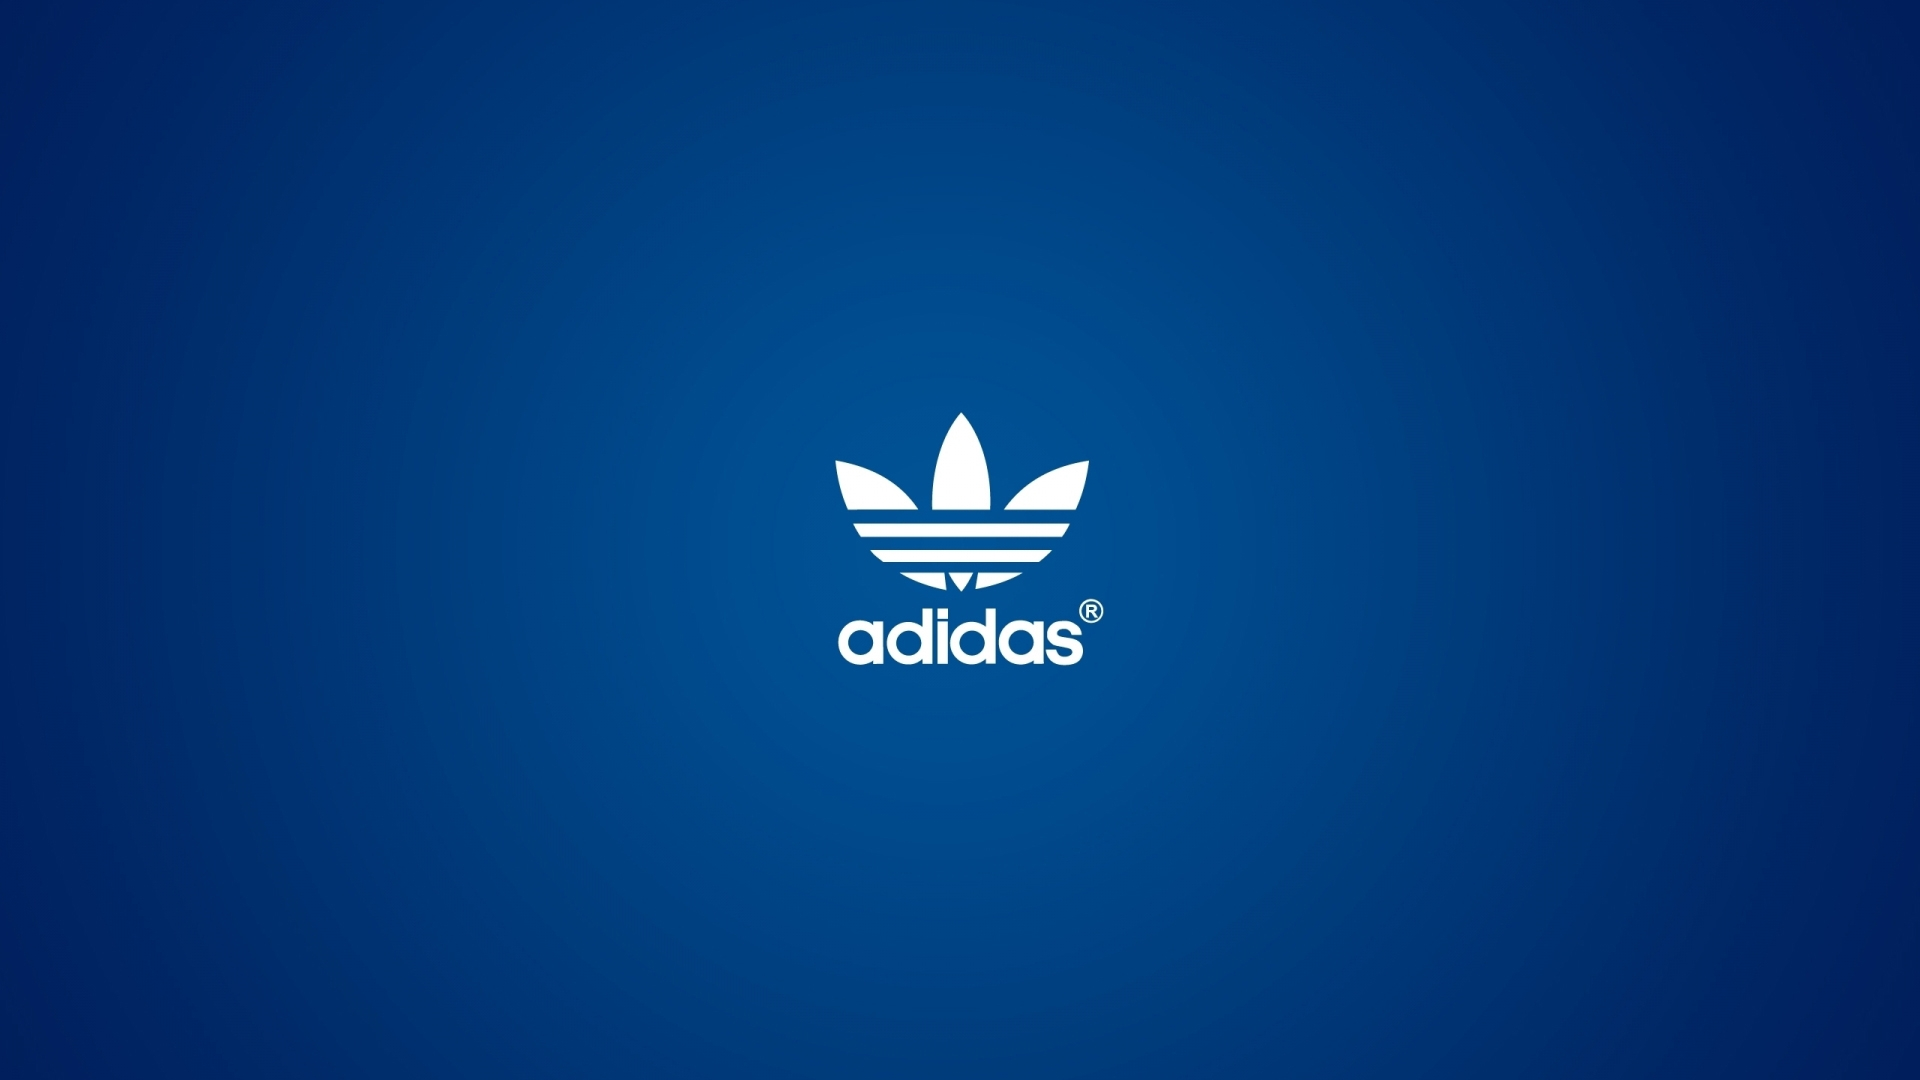 Earnings Disclaimer >> Download Wallpaper 1920x1080 adidas, logo, blue background Full HD 1080p HD Background